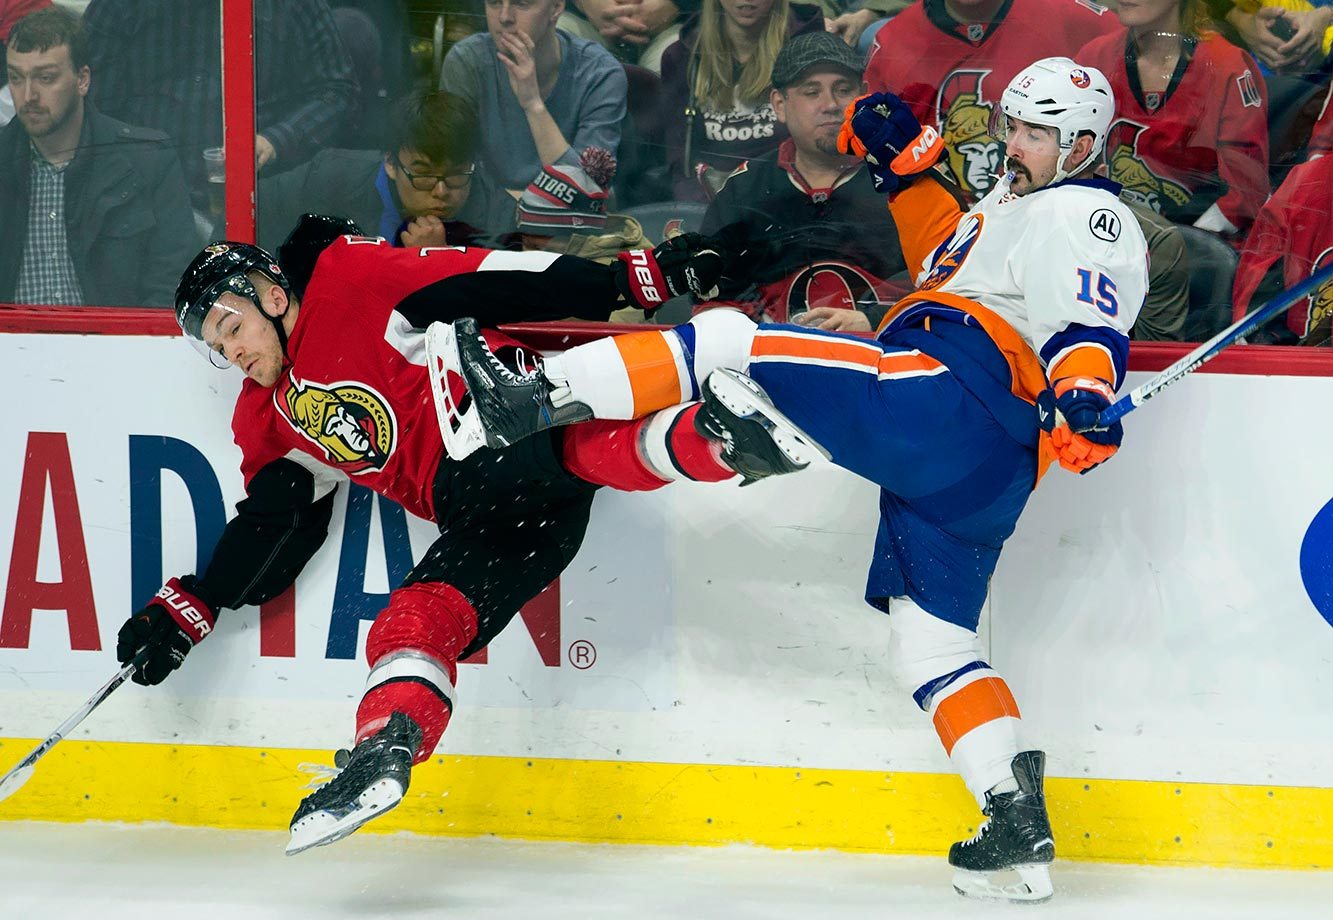 Ottawa Senators defenseman Mark Borowiecki and New York Islanders right wing Cal Clutterbuck should probably avoid kicking with blades on their feet during a game in Ottawa.